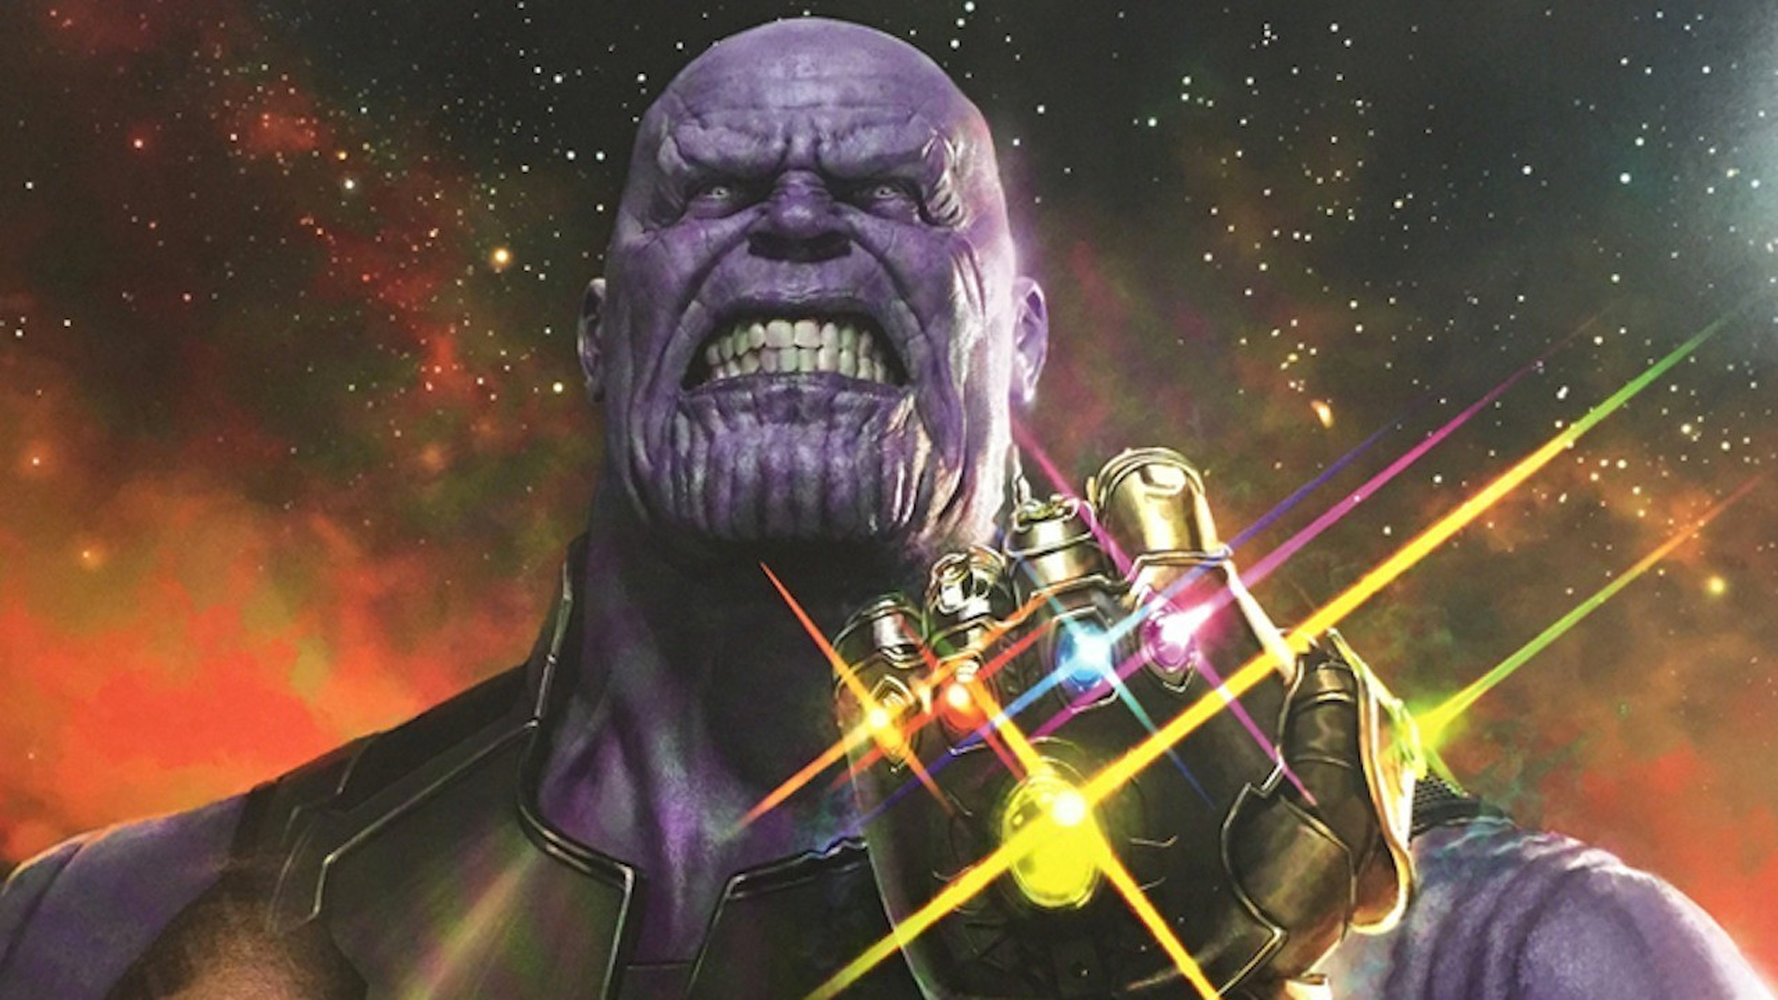 Thanos with all six stones, the son of a gun